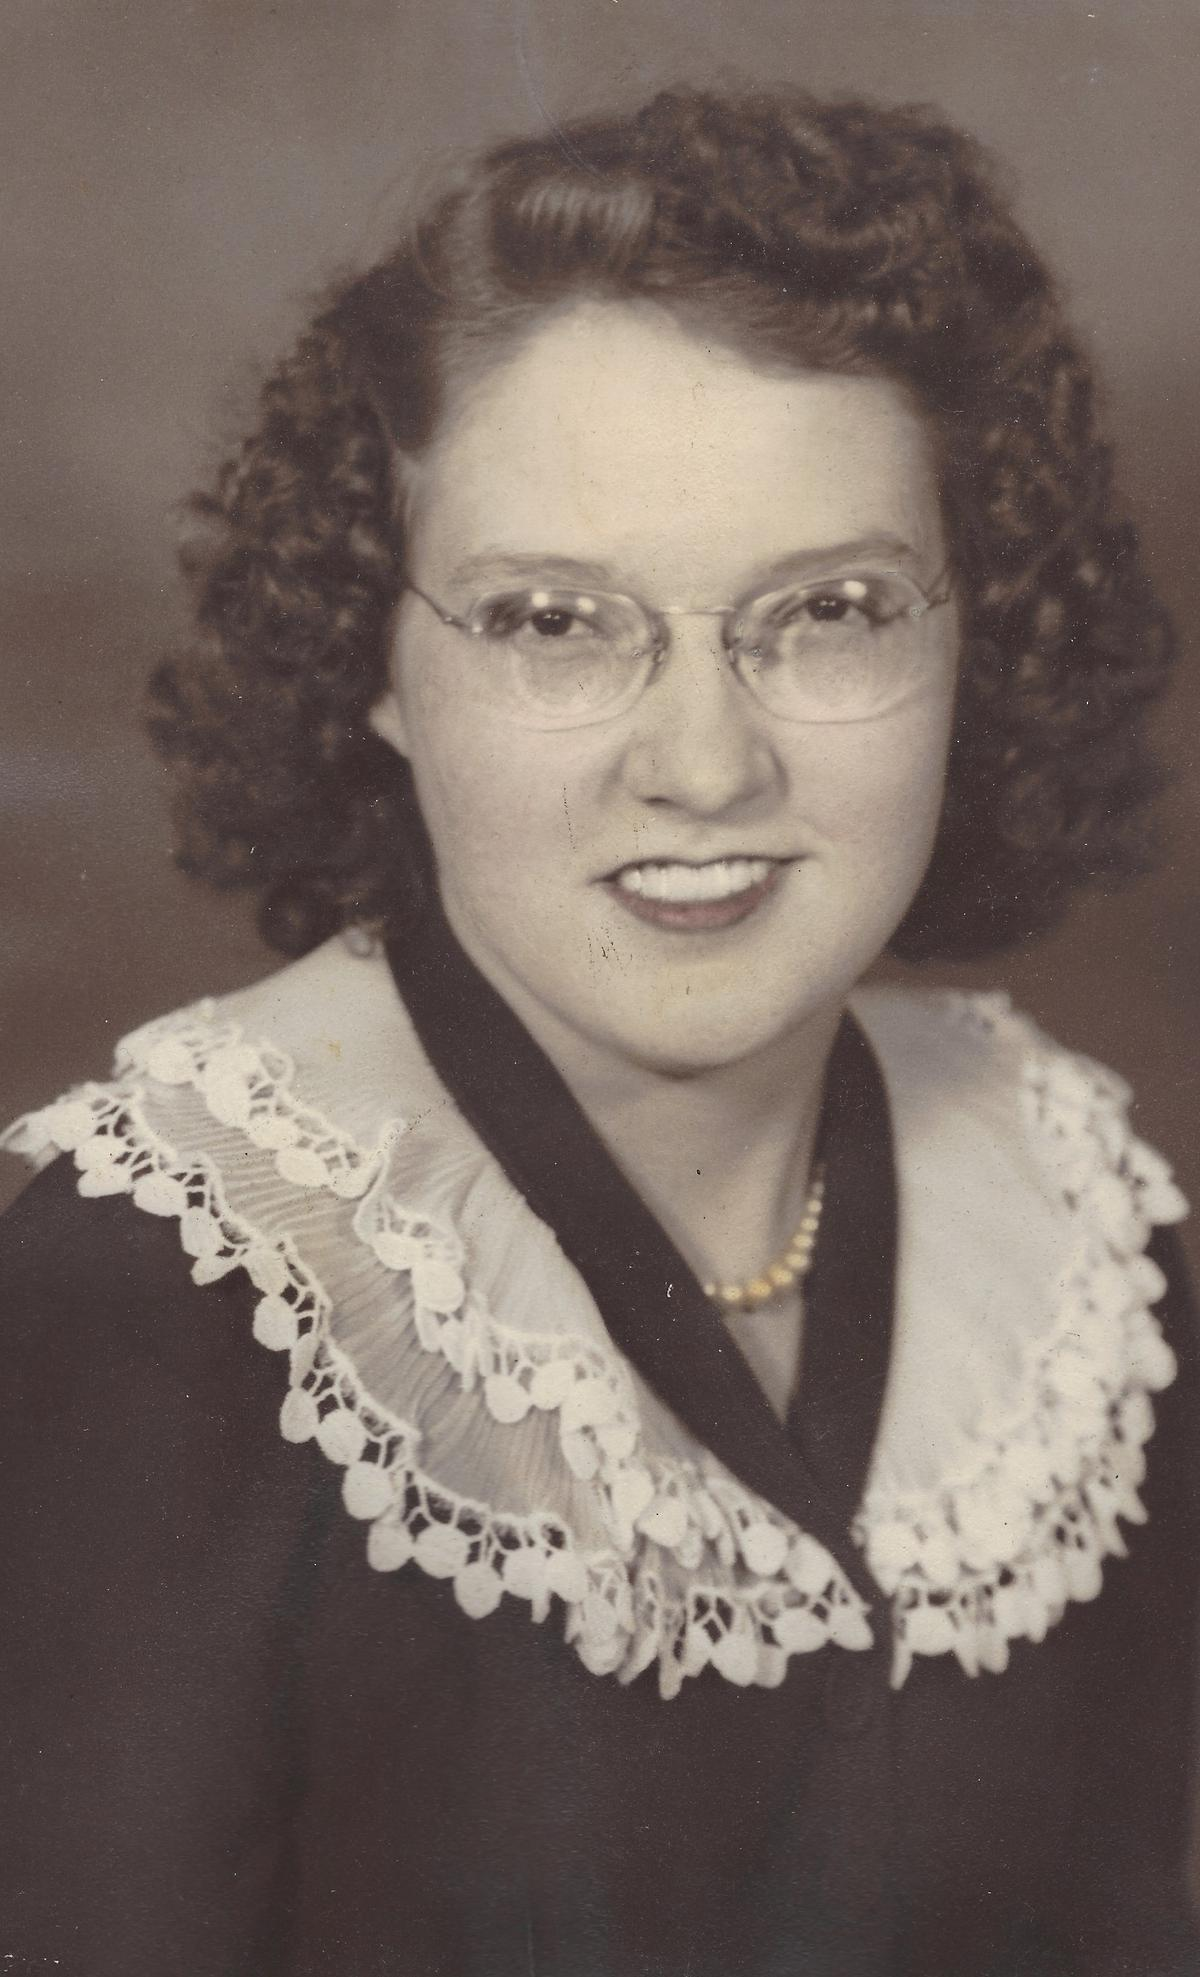 Golda Lee Worsham Whittley